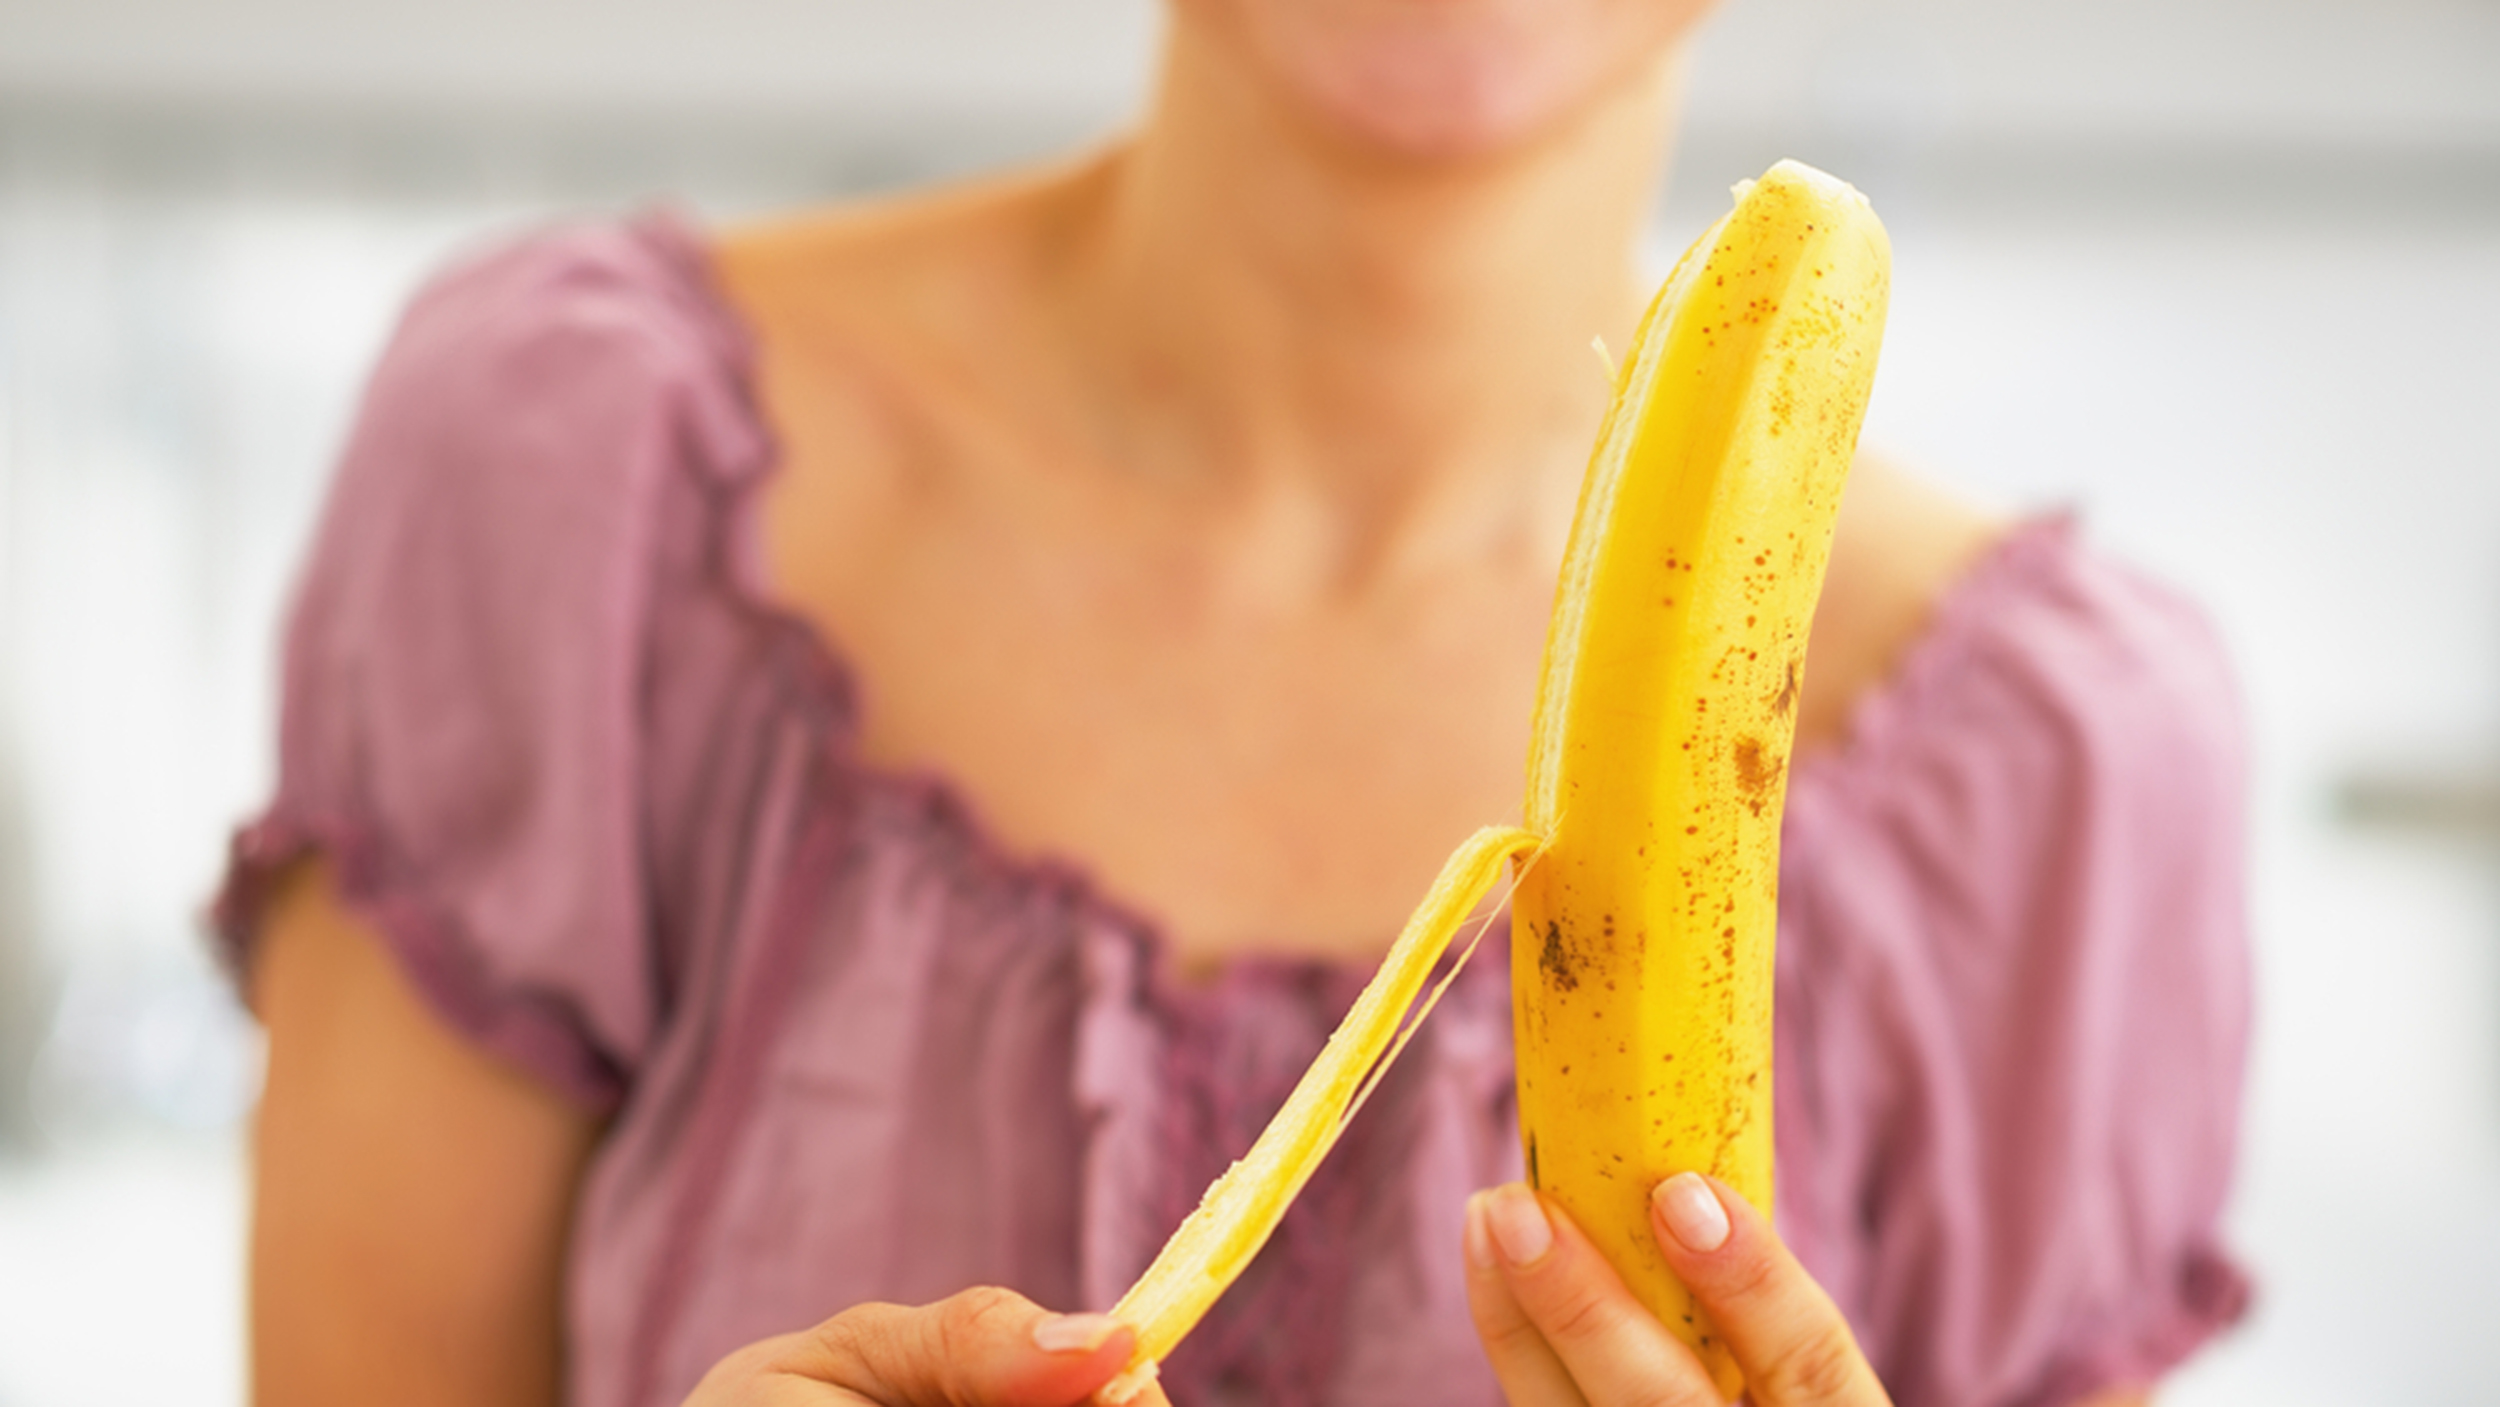 Should You Be Eating Banana Peels The Science Is Slippery